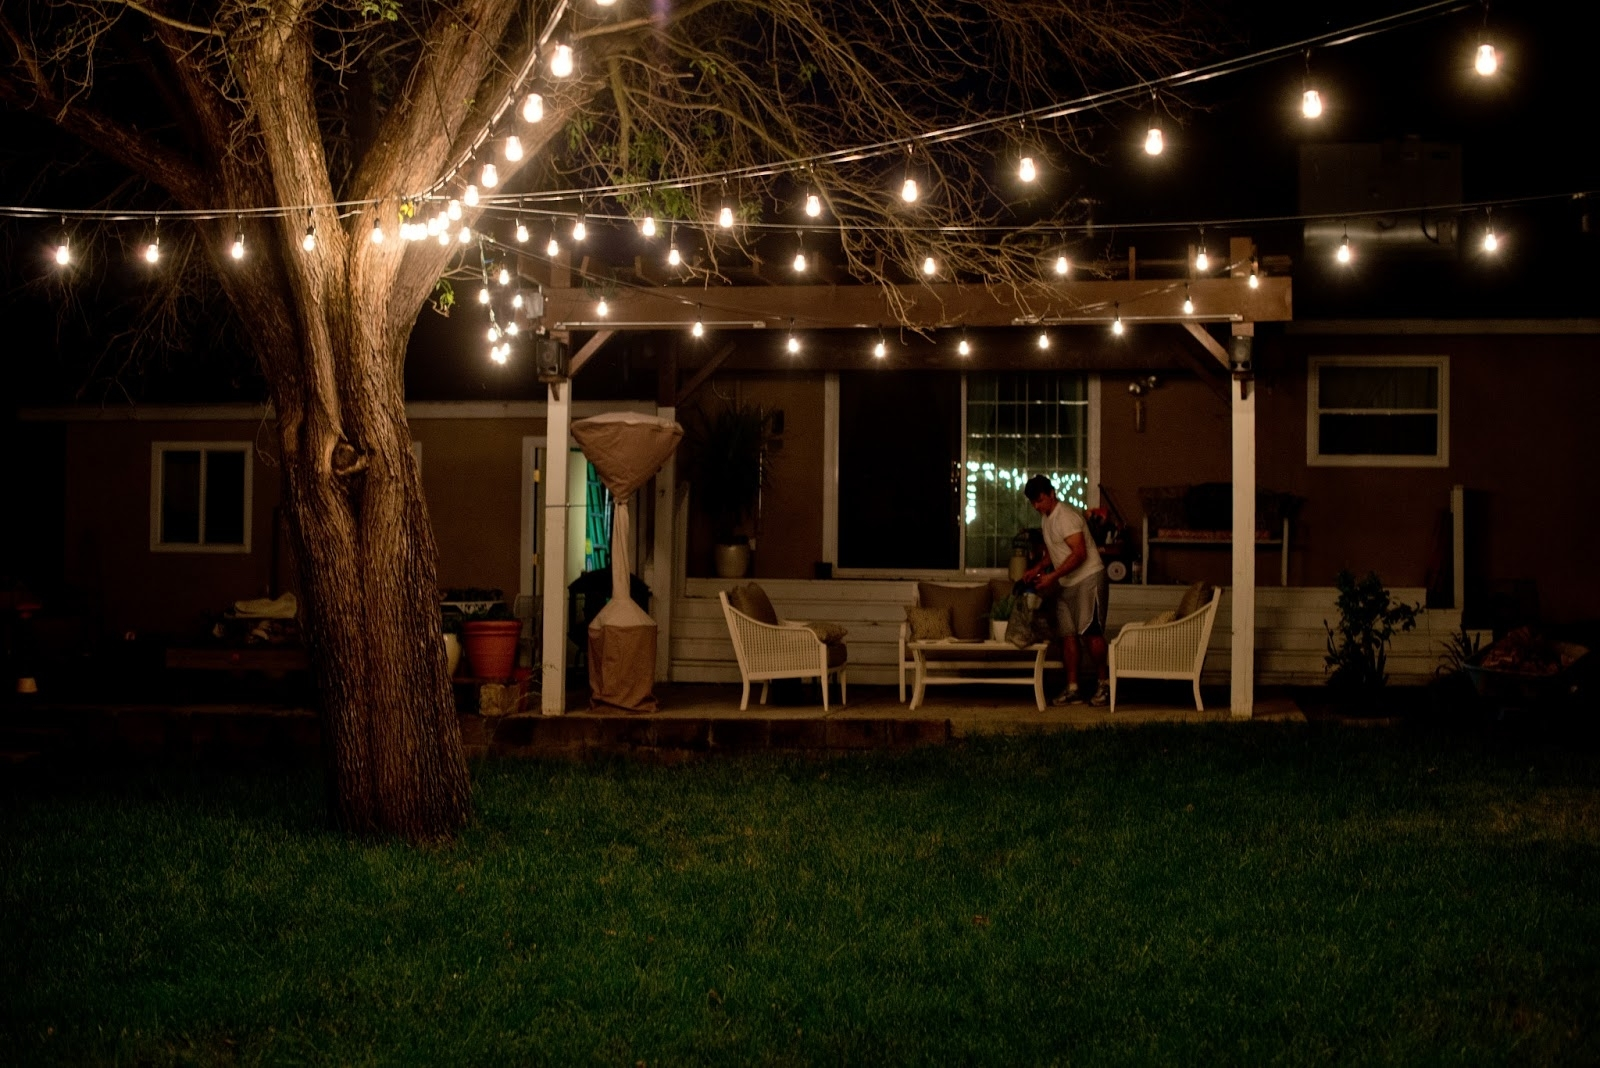 Outdoor Hanging Lights On String For Well Liked Lighting: Pretty Outdoor Hanging Lights For Outdoor Lighting Design (View 13 of 20)